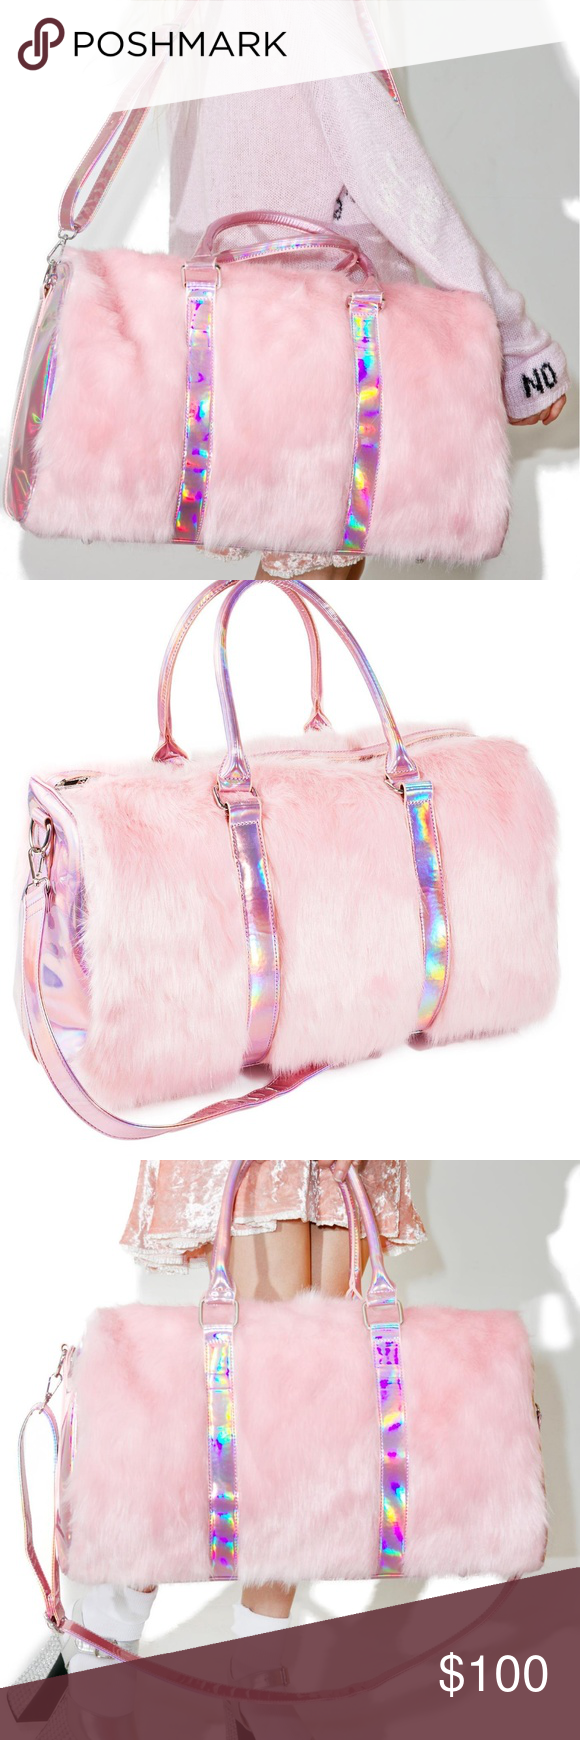 1a987a57ea 💎SugarThrillz LUXURIOUS Fluffy Duffle Bag This Sugar Thrillz Shagadelic  Weekender is all set for a shaggin  good time! This super pretty weekender  bag ...